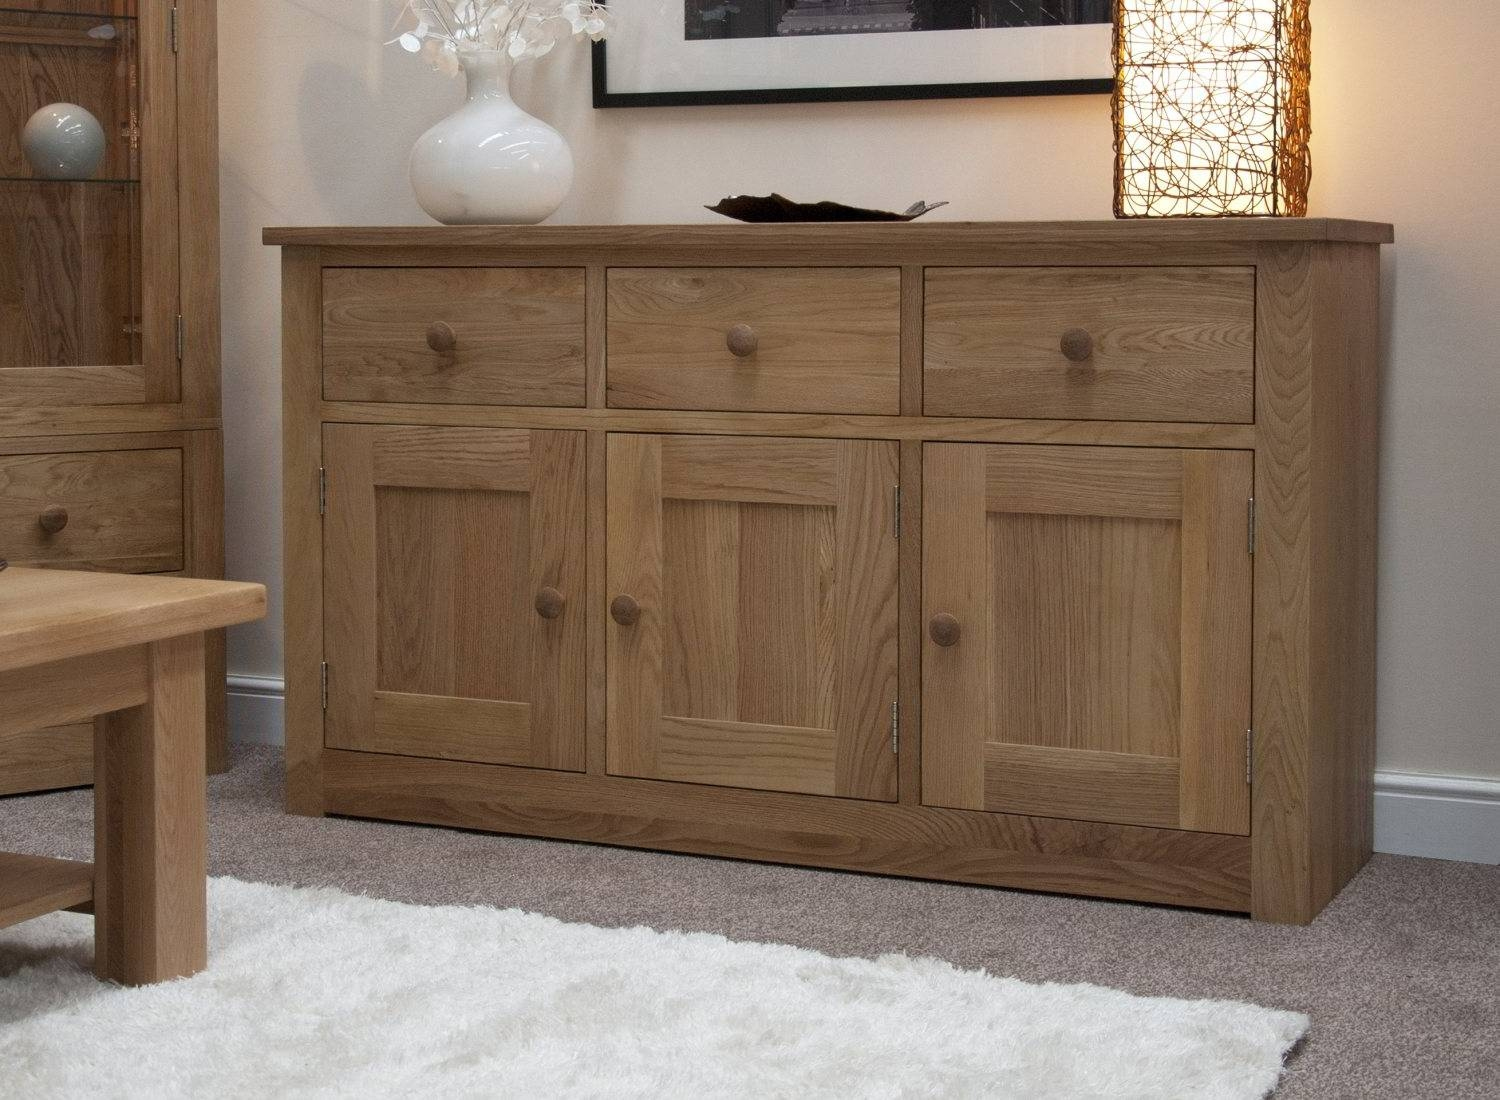 Kingston Solid Oak Living Dining Room Furniture Large Storage Intended For Solid Oak Sideboards (View 7 of 15)